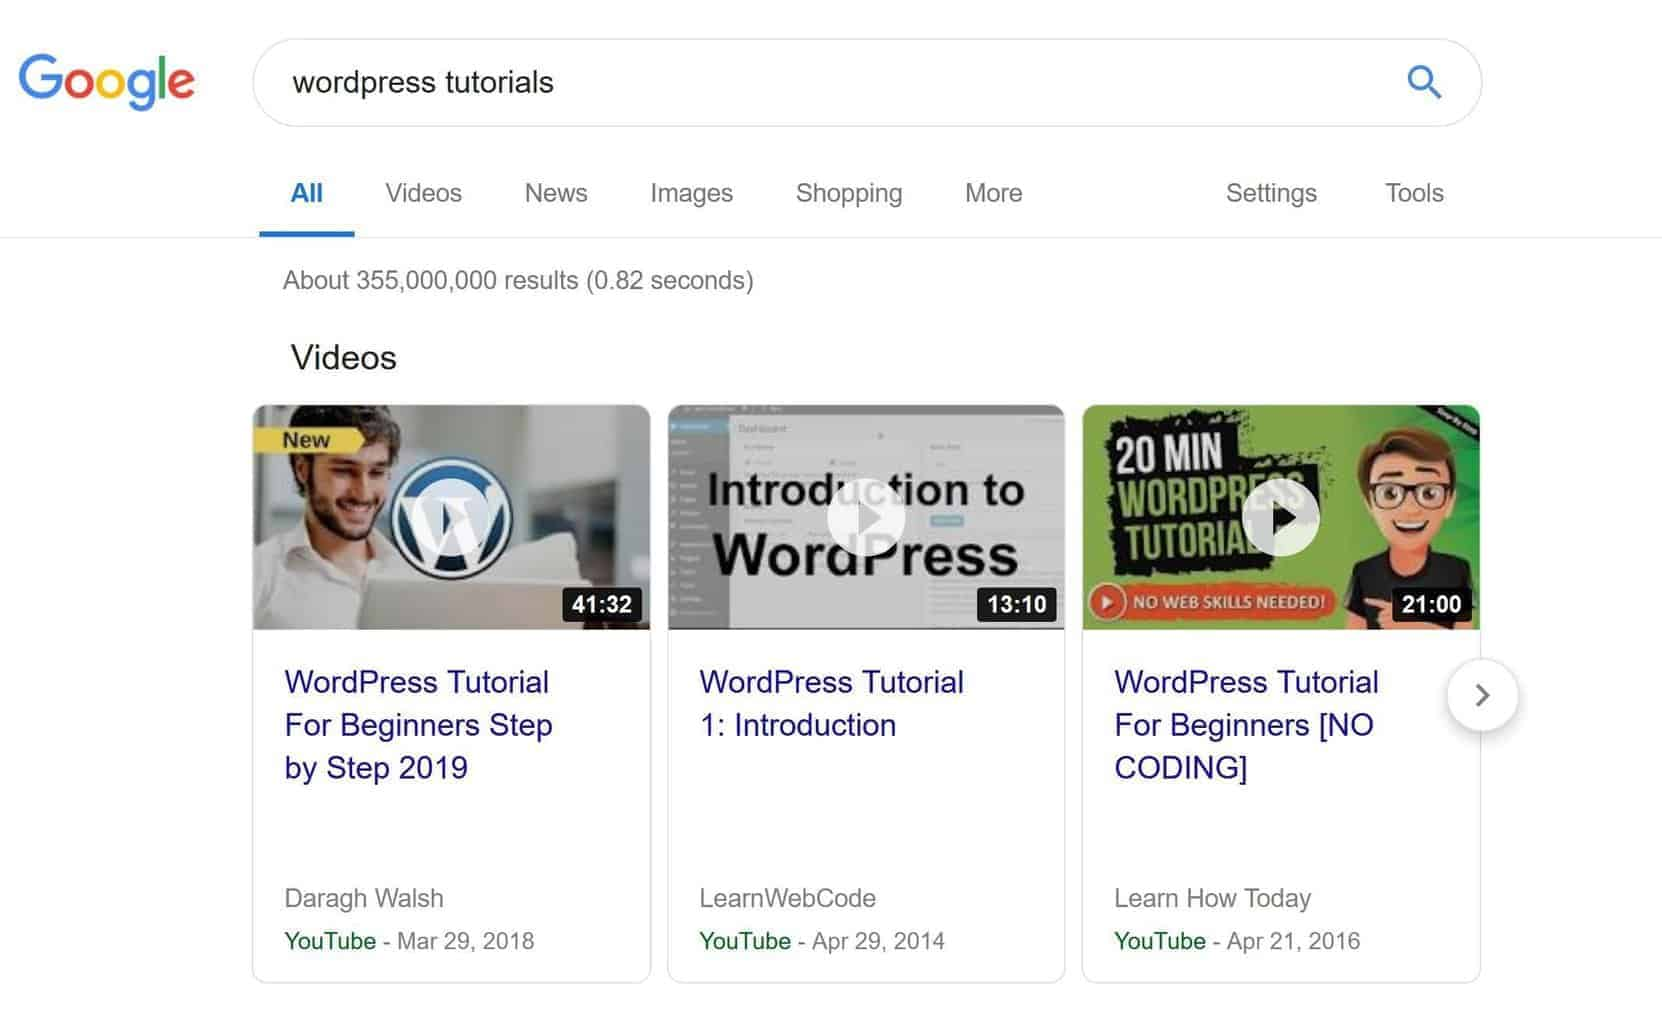 Google often displays YouTube videos at the top of popular search results